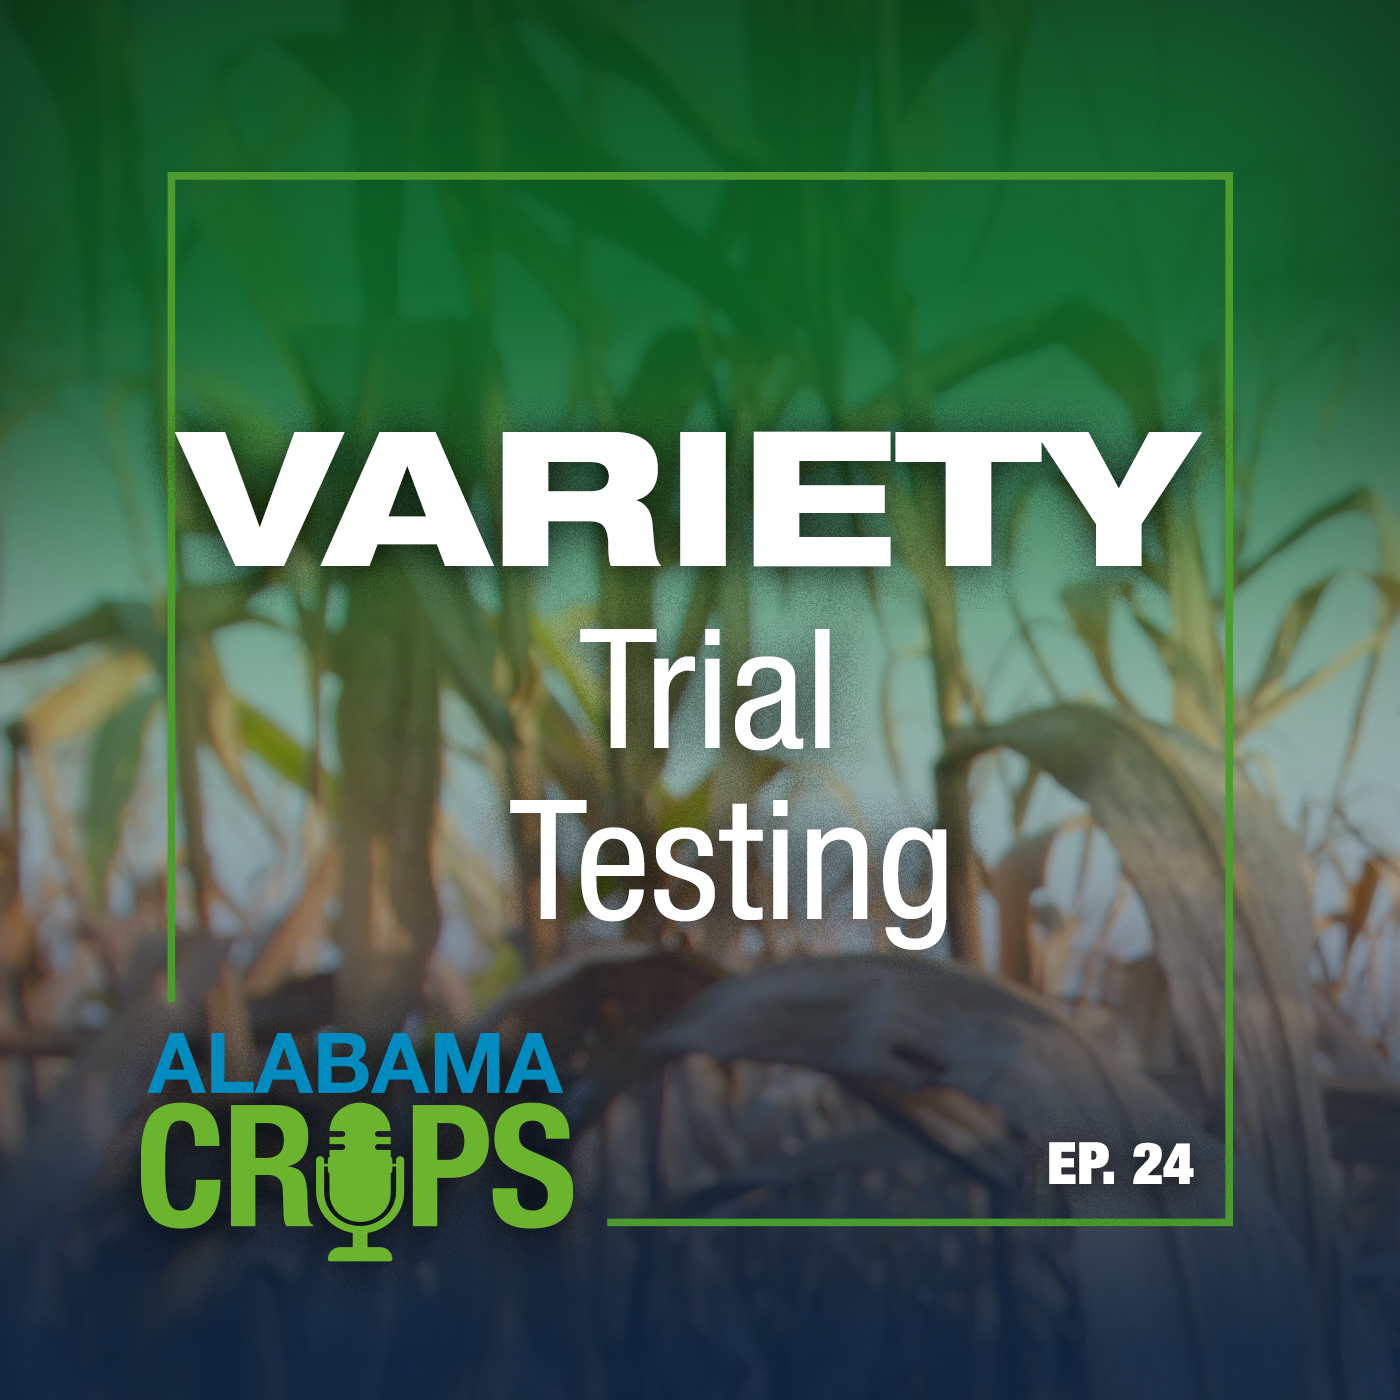 Episode 24 Variety Trial Testing